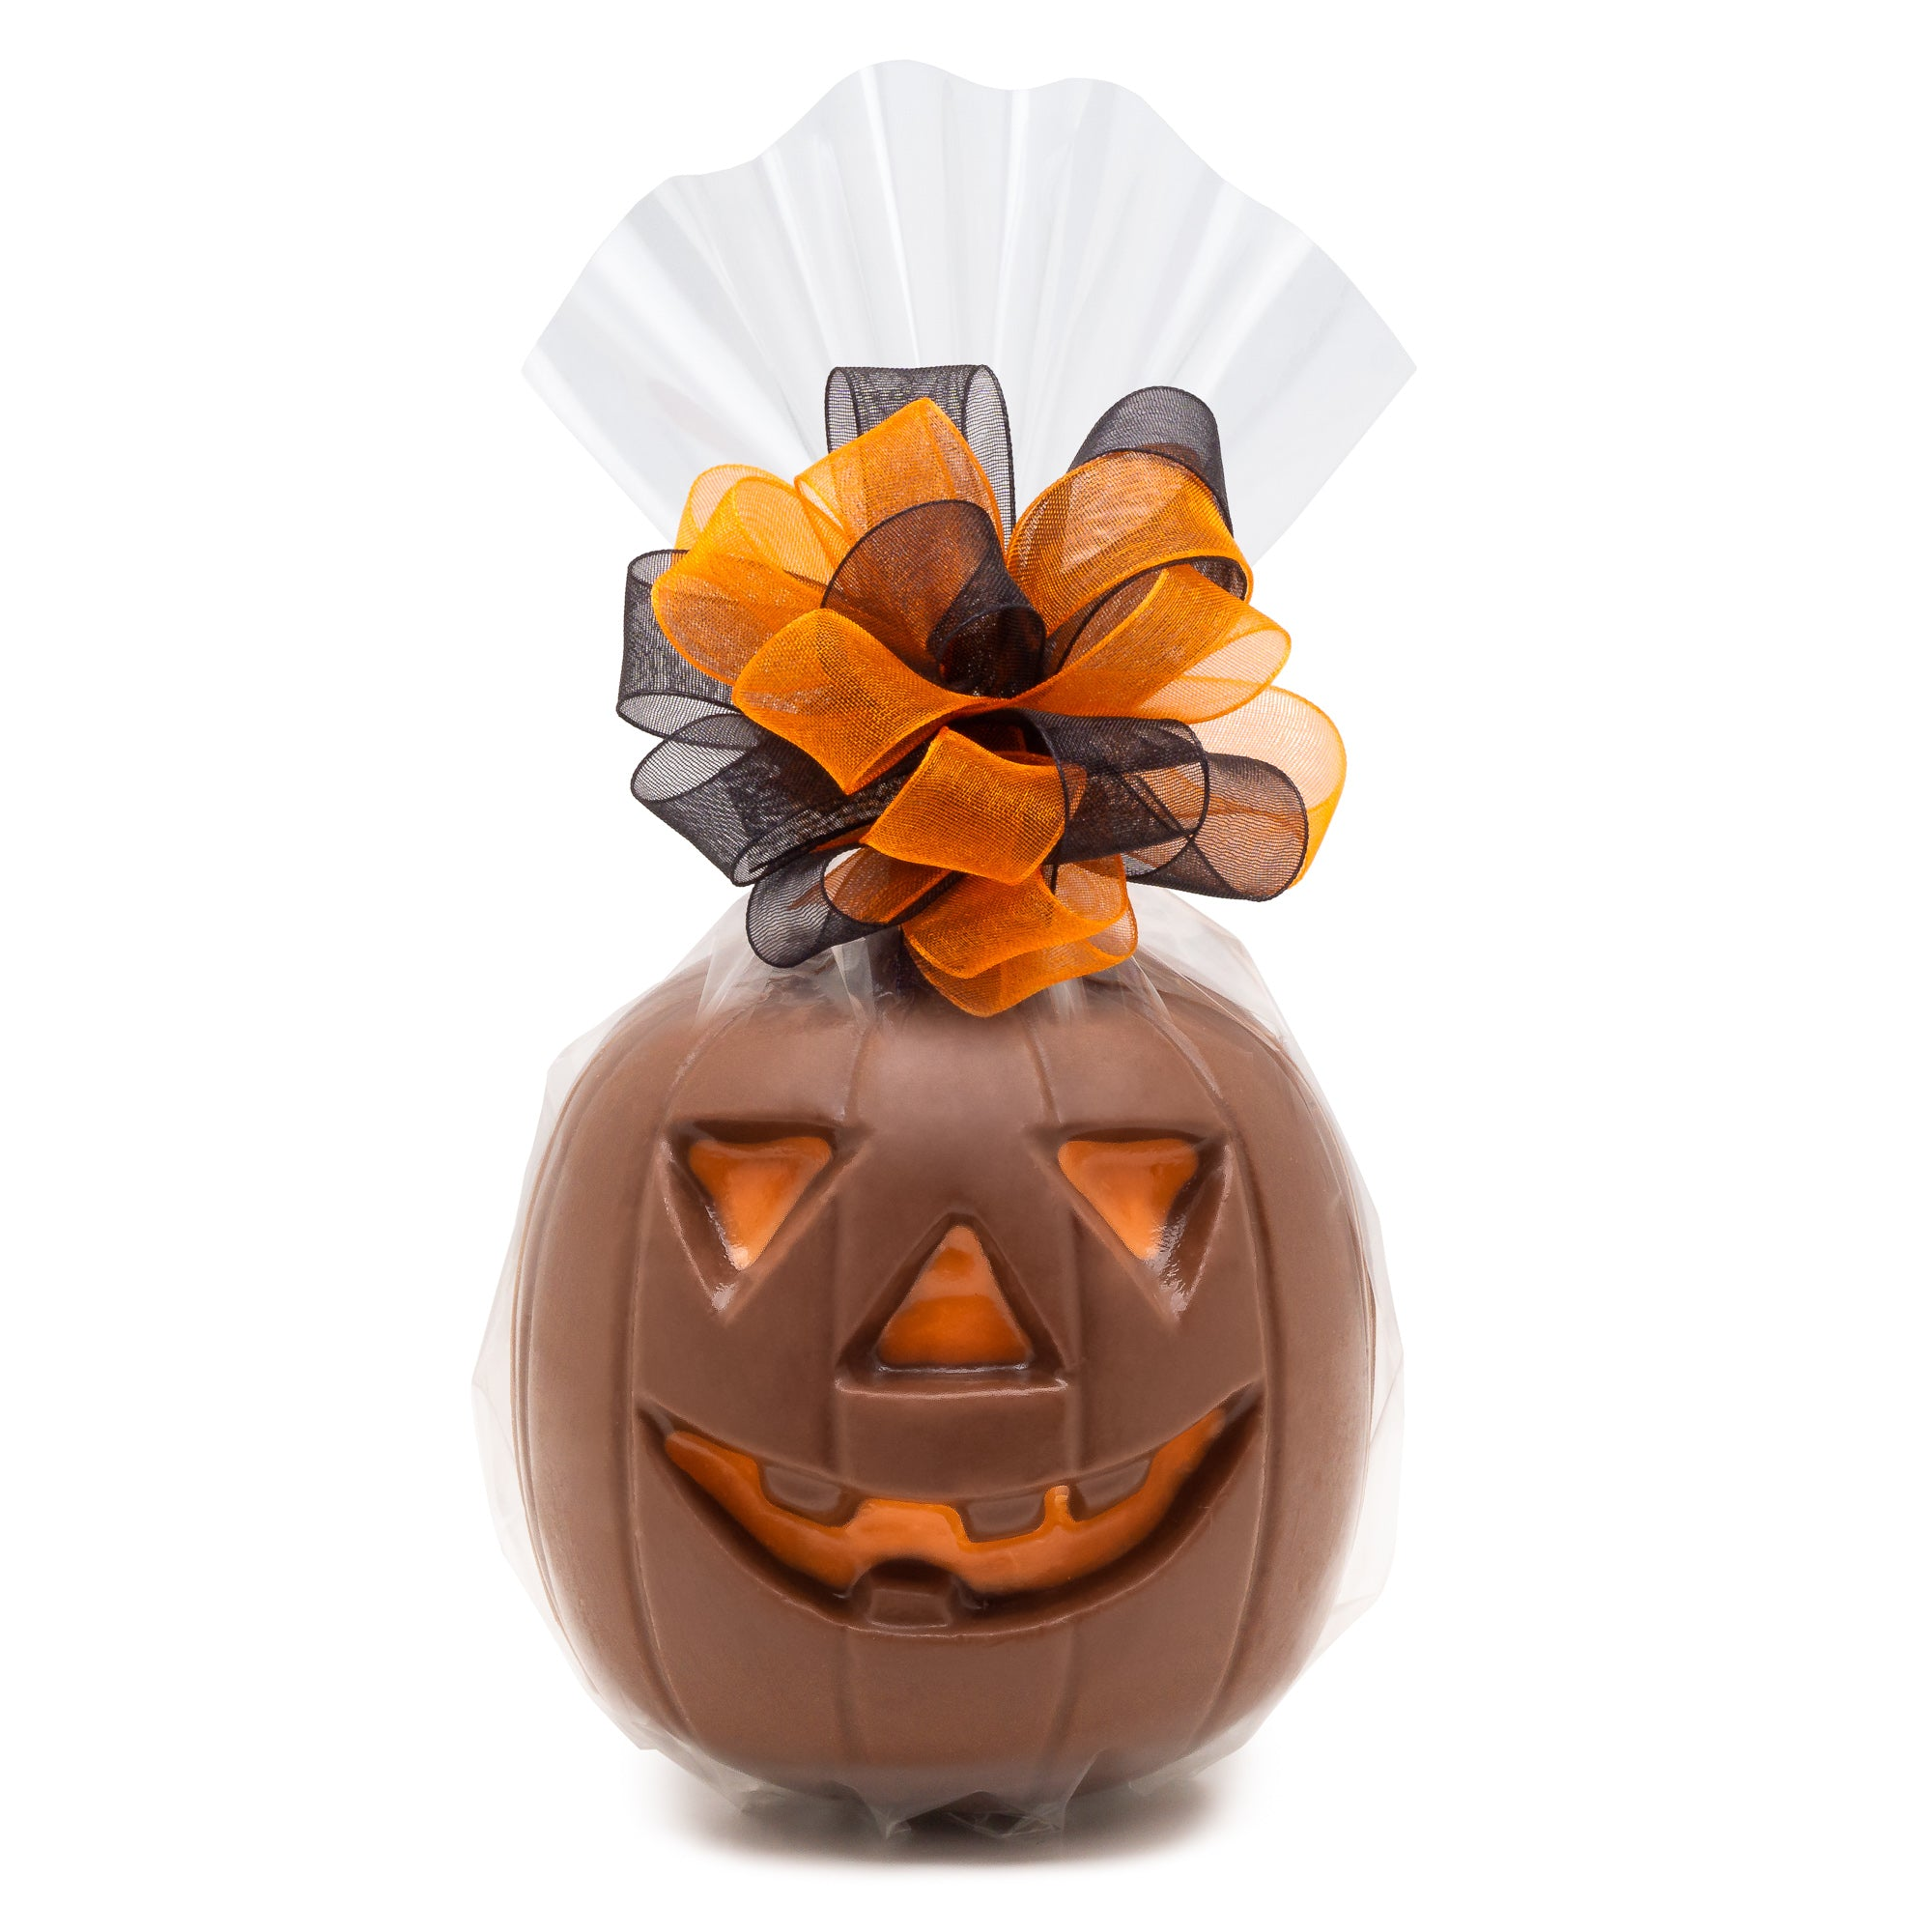 Chocolate Almond Filled Jack O'Lantern